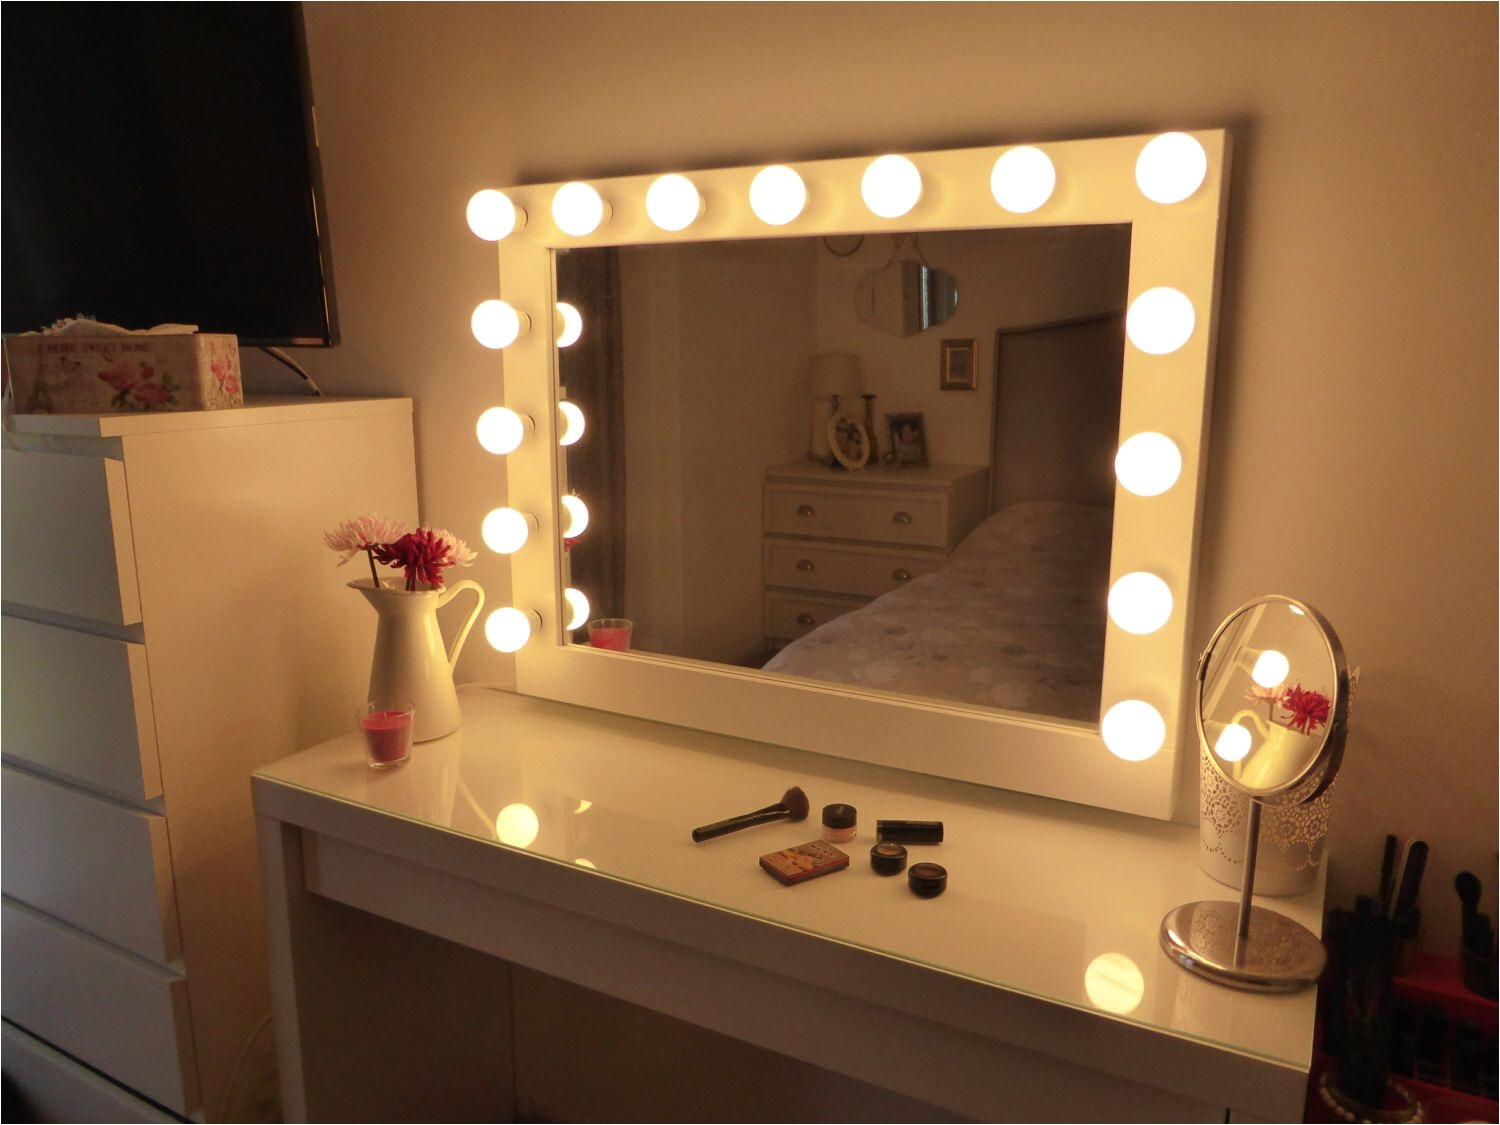 hollywood lighted vanity mirror large makeup mirror with lights wall hanging free standing perfect for ikea malm vanity bulbs not included by